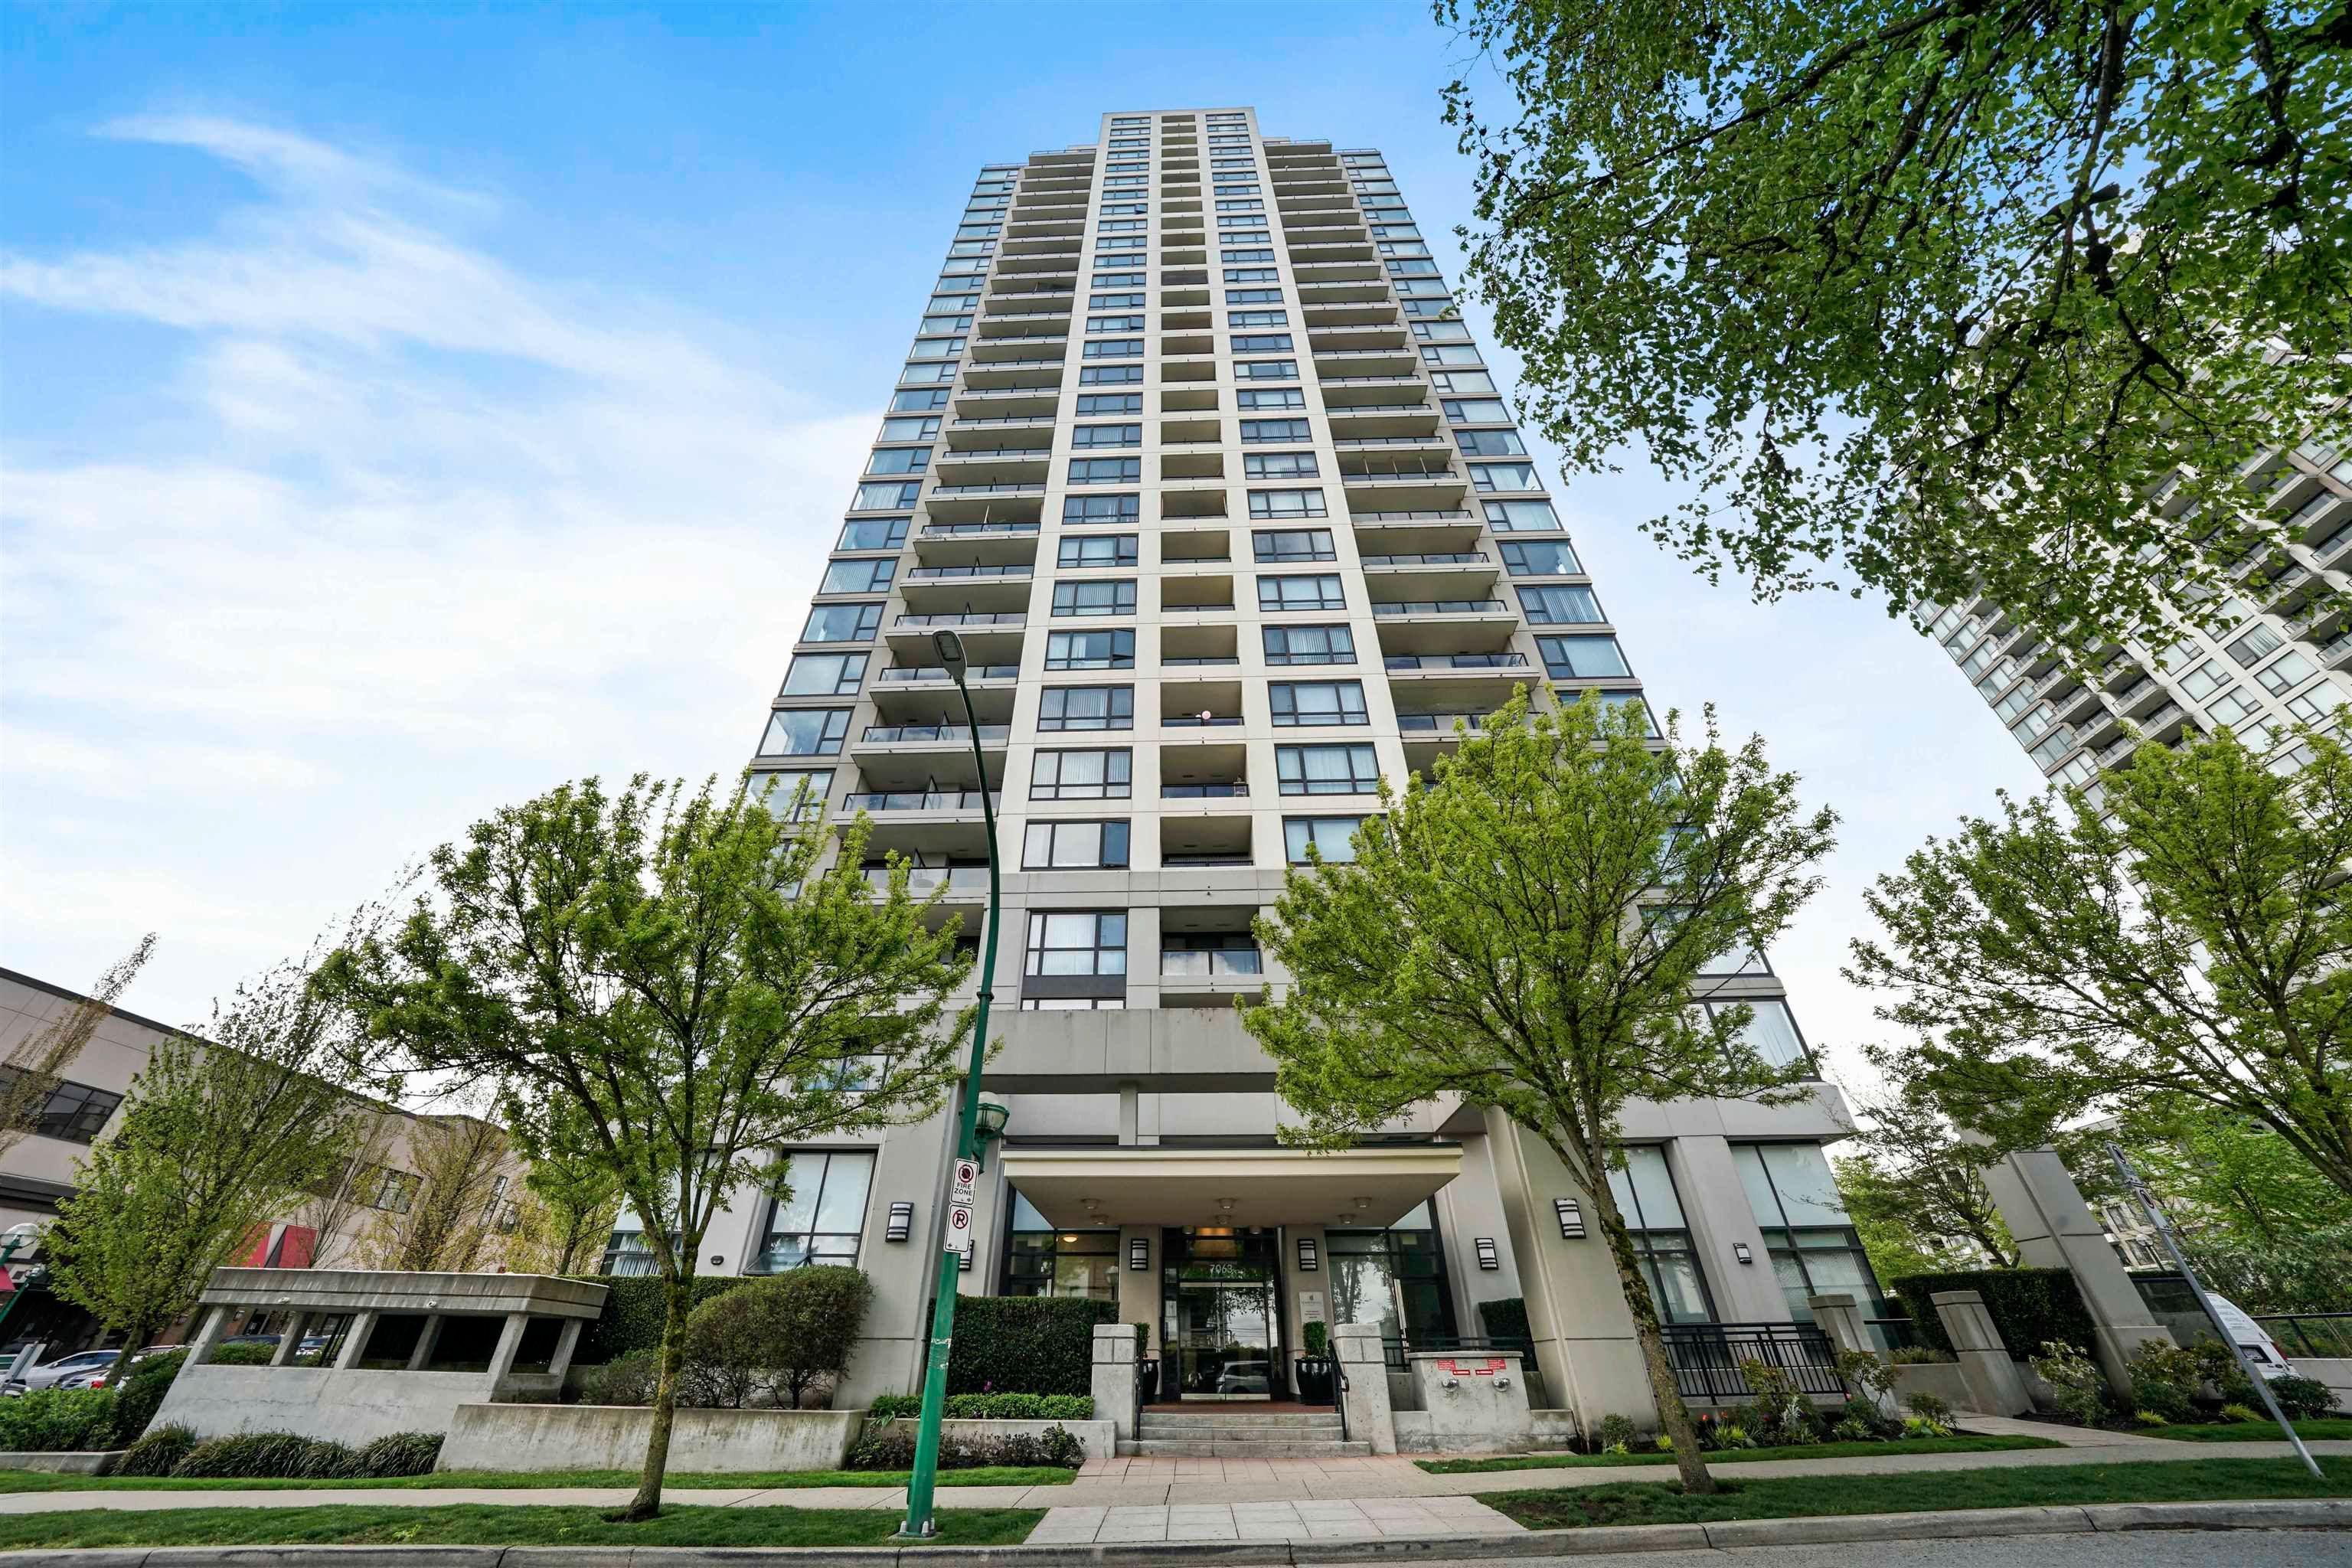 """Main Photo: 3001 7063 HALL Avenue in Burnaby: Highgate Condo for sale in """"EMERSON"""" (Burnaby South)  : MLS®# R2621144"""